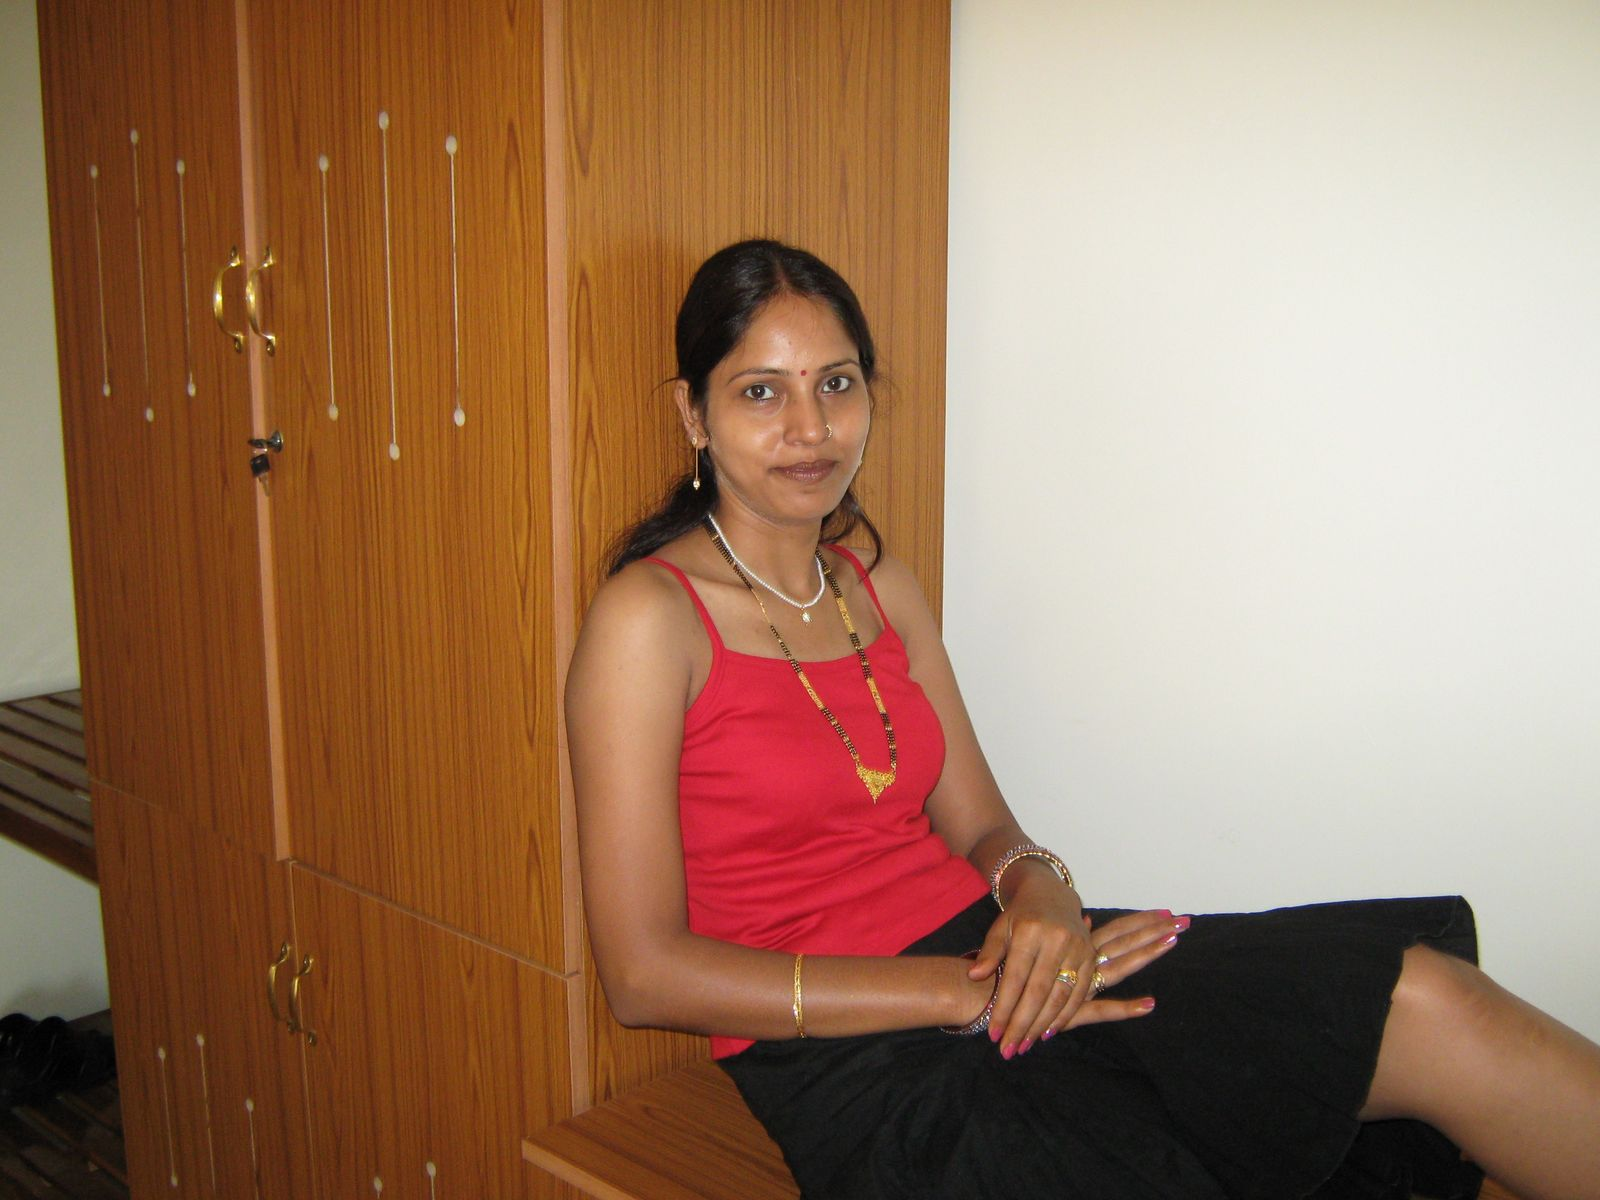 Women seeking indian men minneapolis